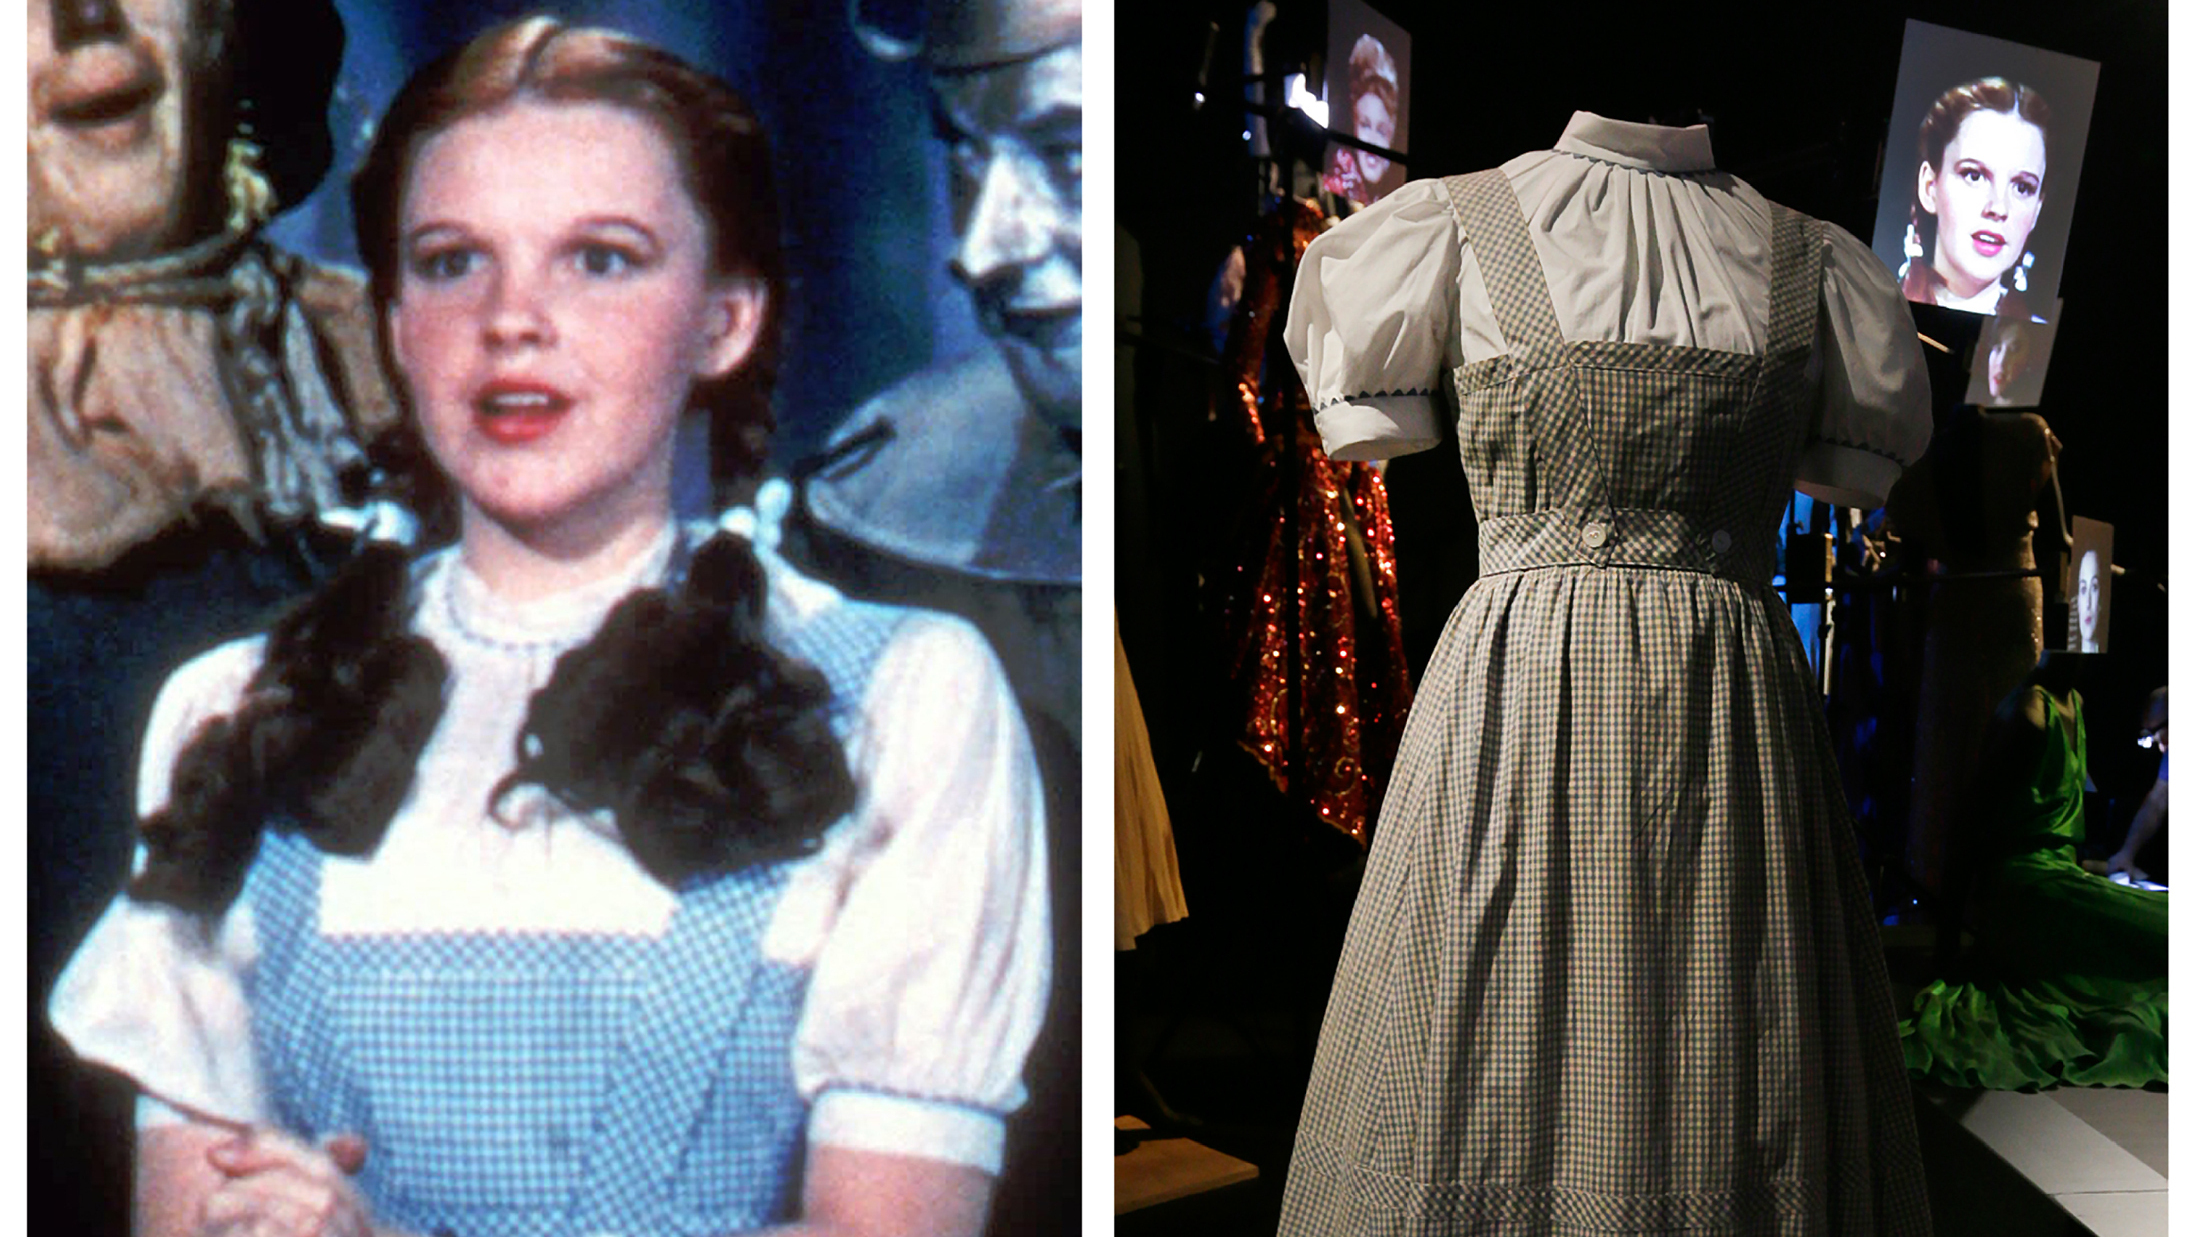 Dorothy Dress From The Wizard Of Oz Sells For More Than 1 5m The Two Way Npr